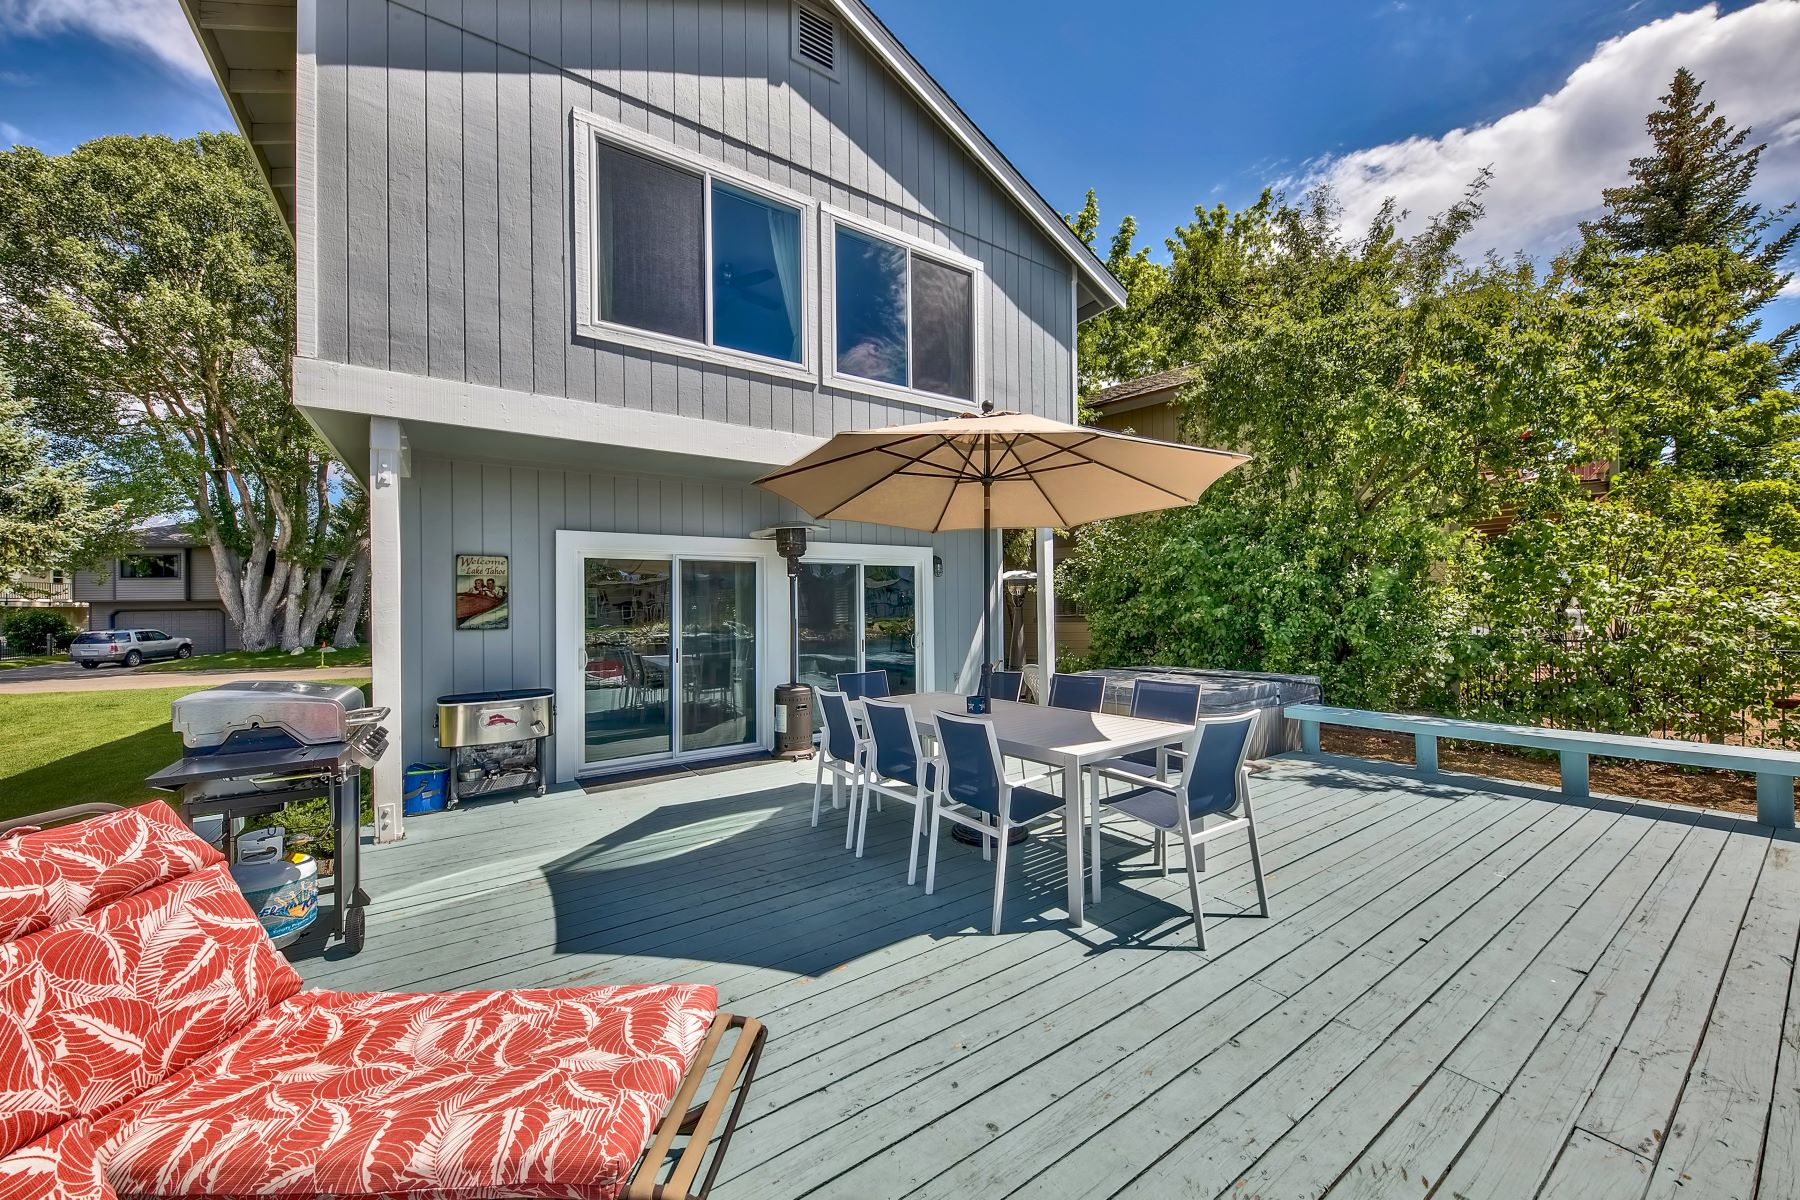 Additional photo for property listing at Stunning Location. 472 Christie Drive South Lake Tahoe, California 96150 United States